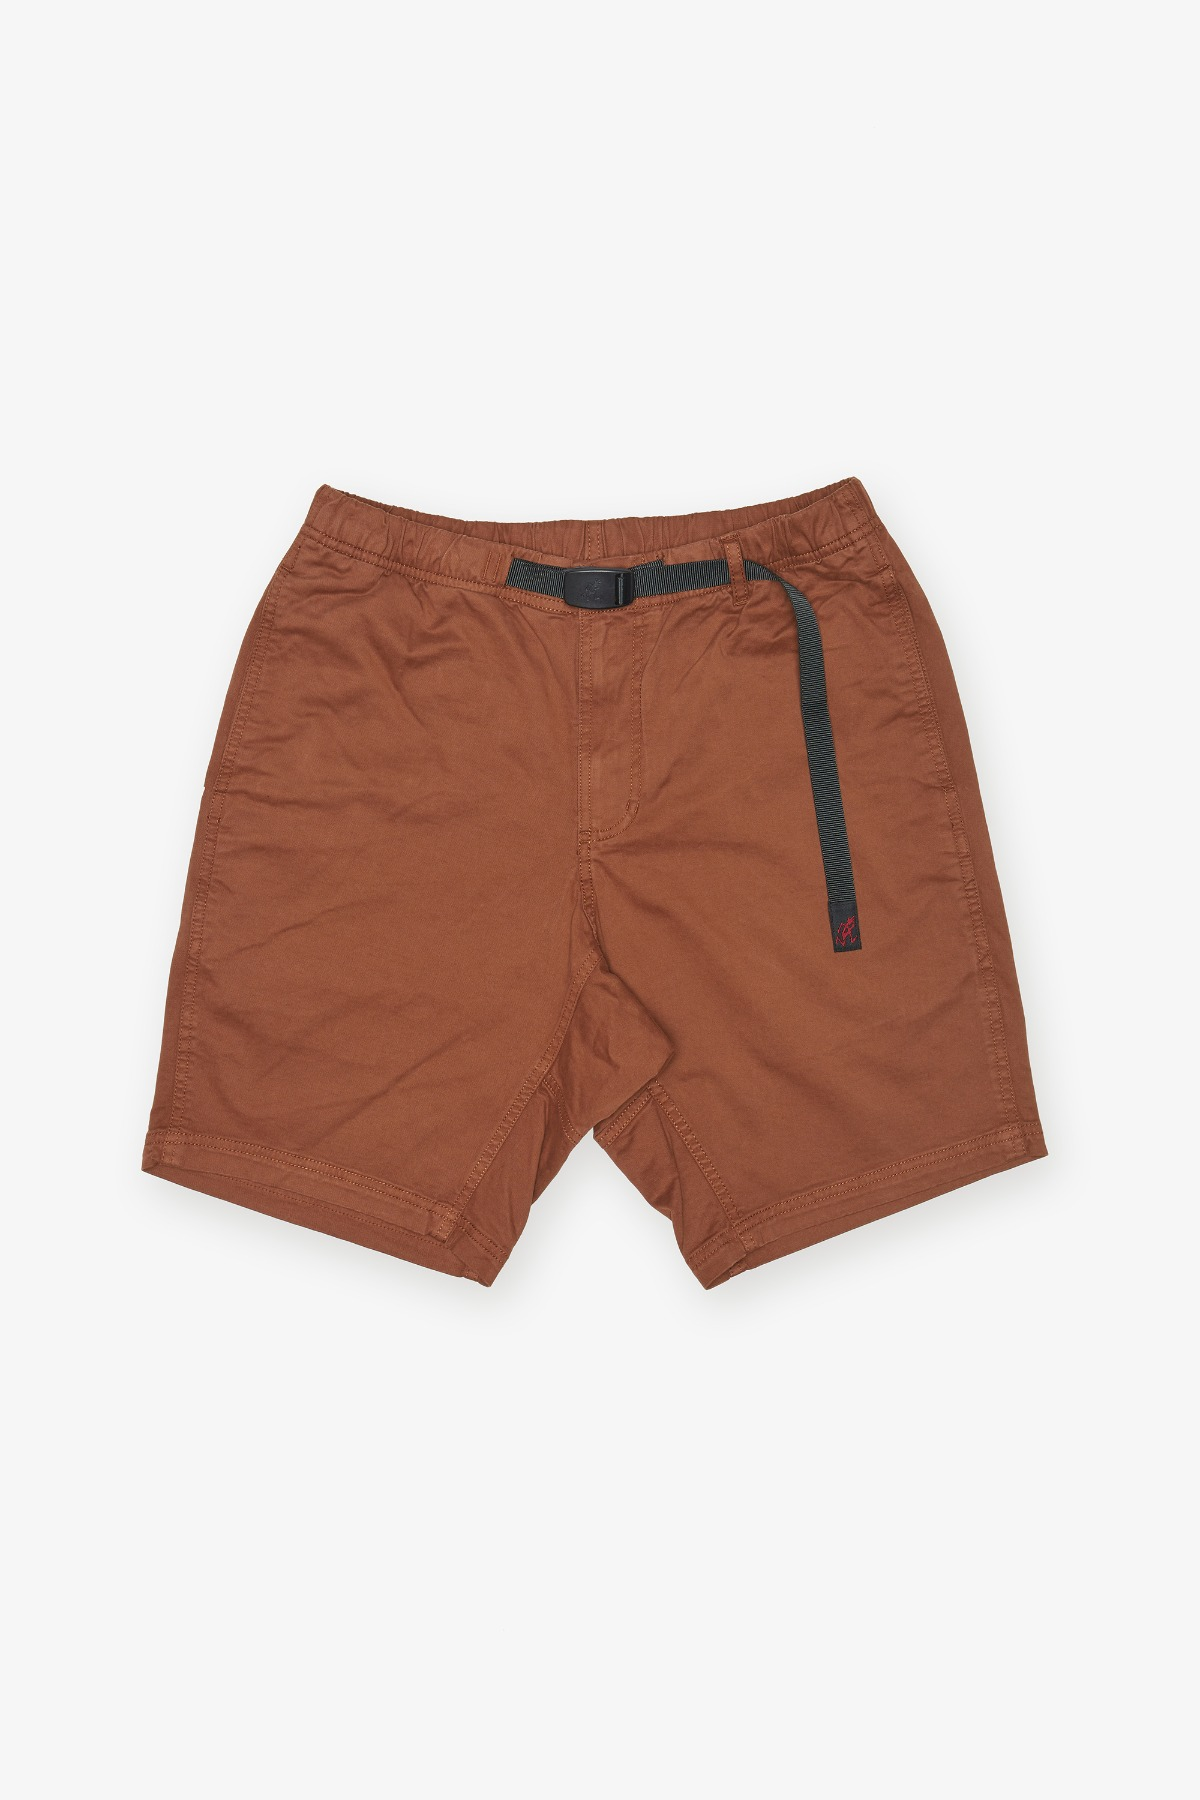 NN-SHORTS BROWN